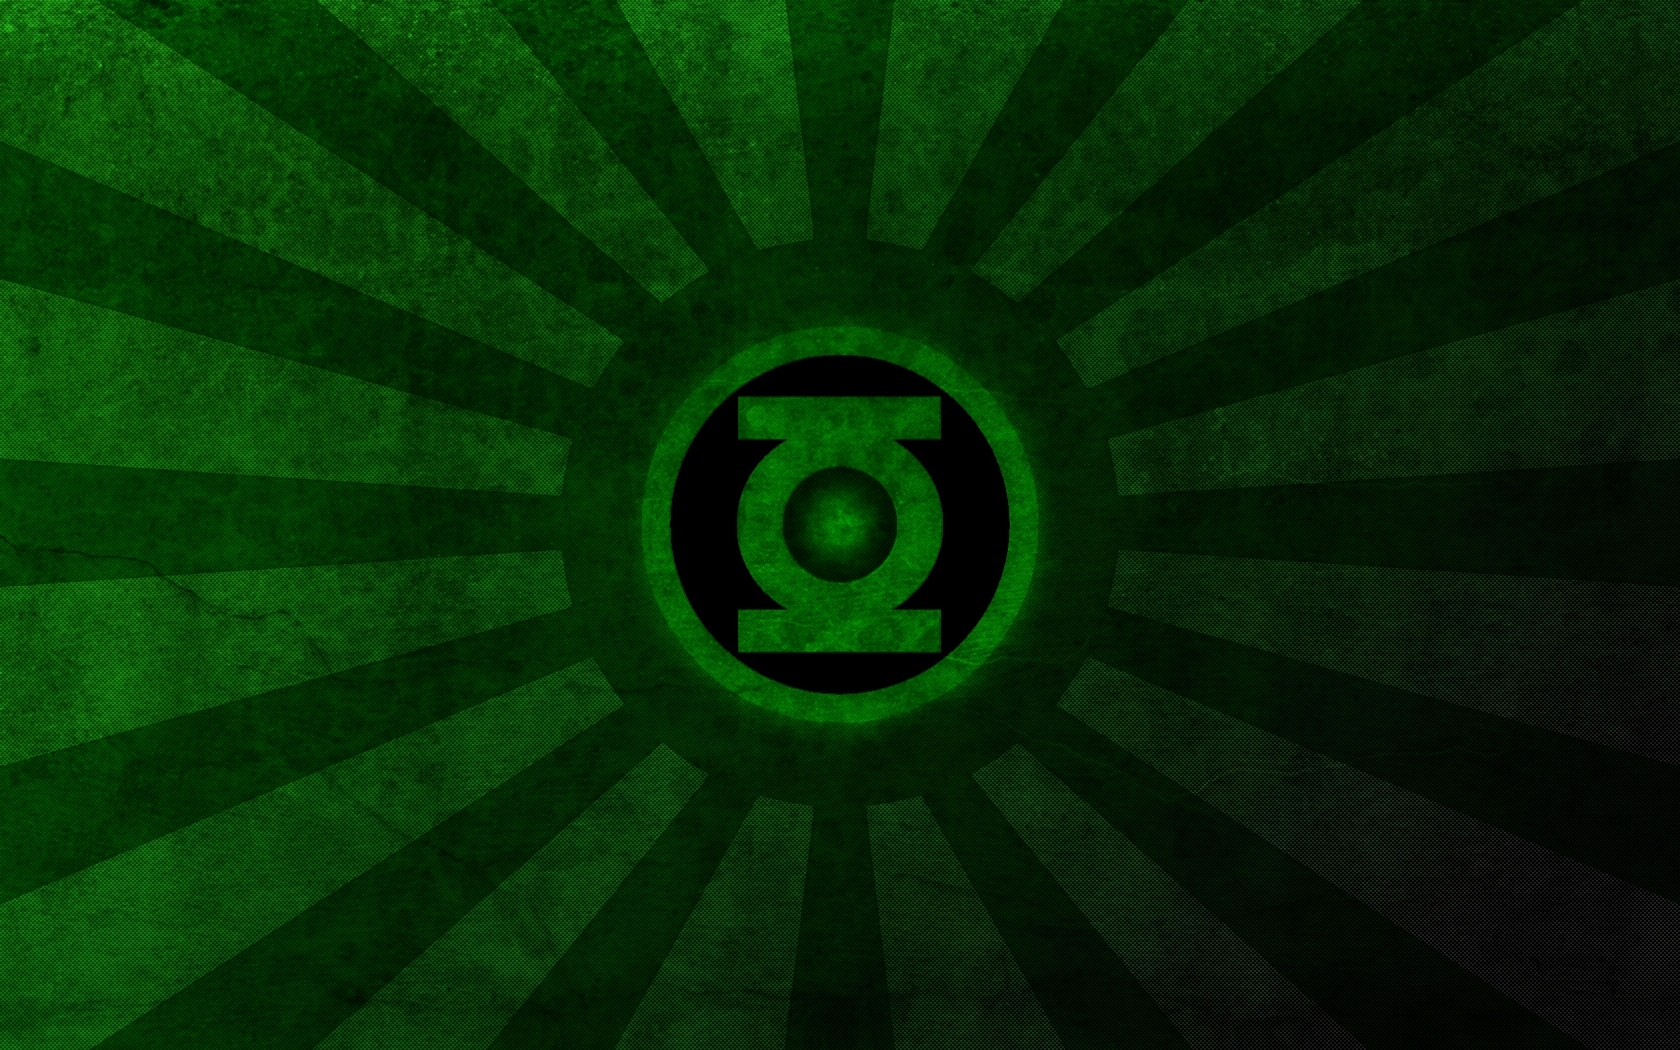 Green Lantern Oath Wallpaper Hd Green lantern wallpaper by 1680x1050